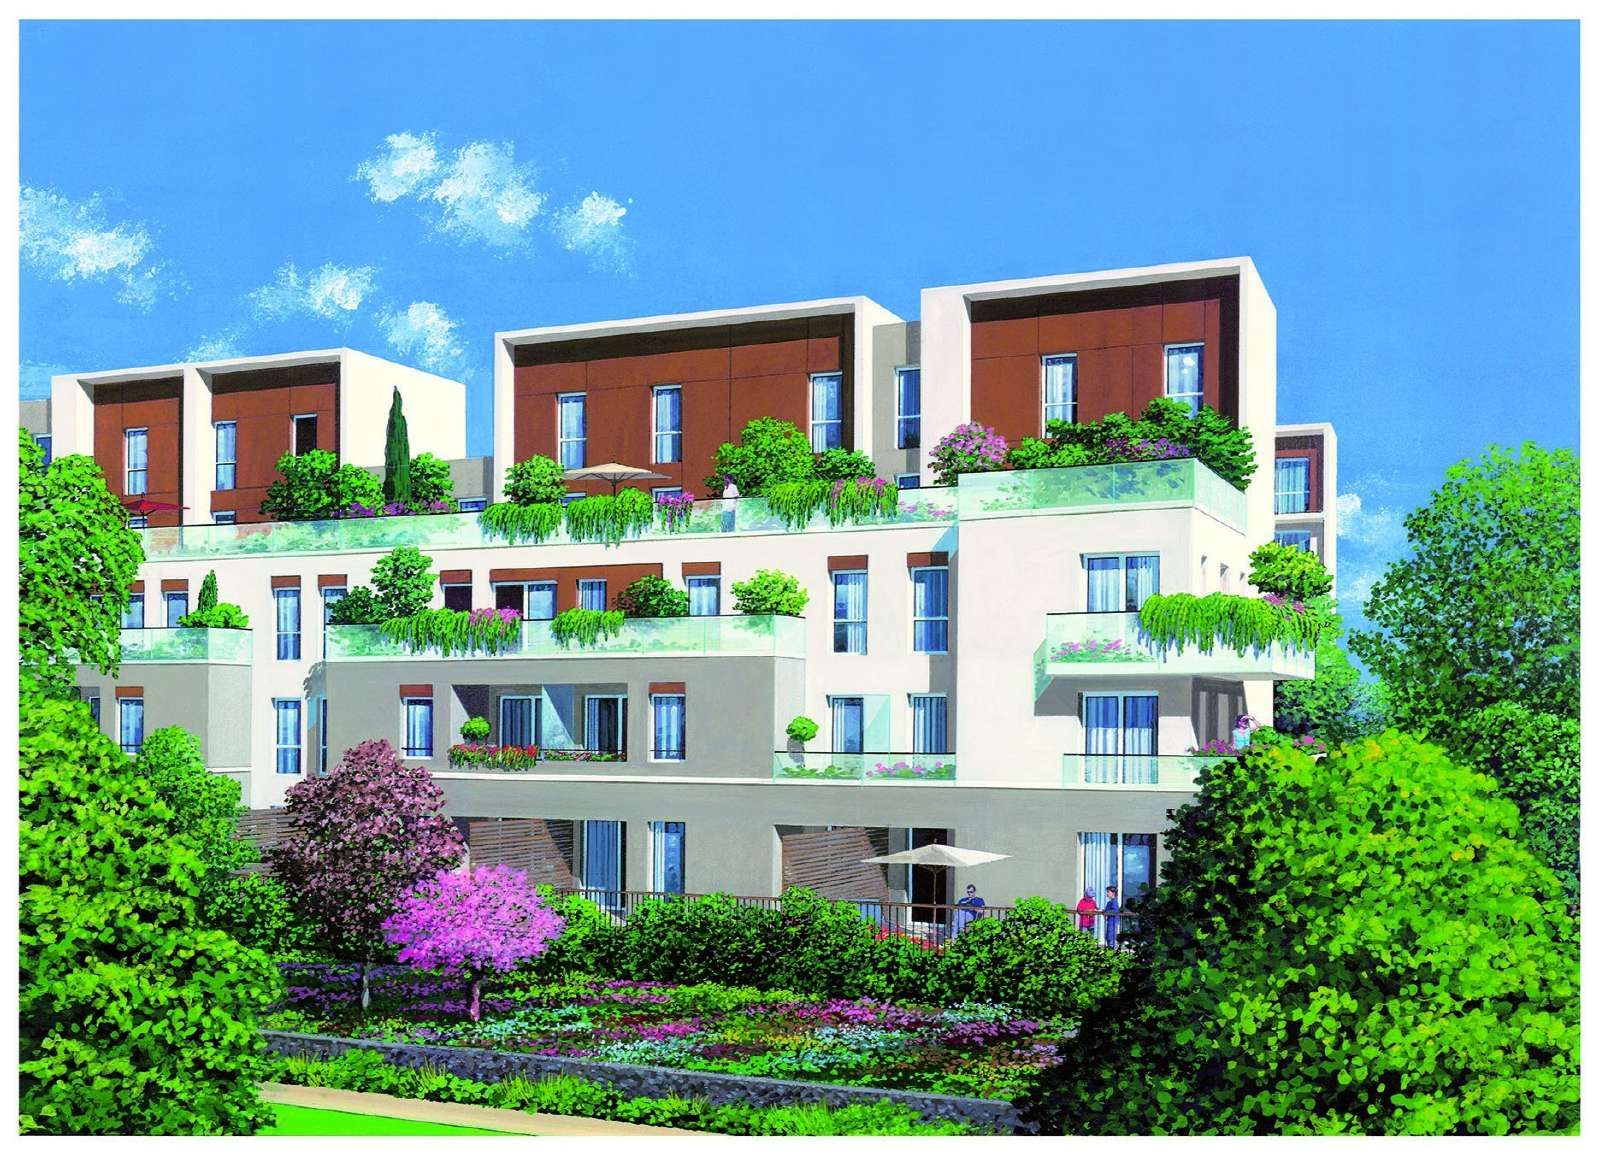 Vente appartement t3 neuf cachan loi scellier ile de for Achat appartement atypique ile de france